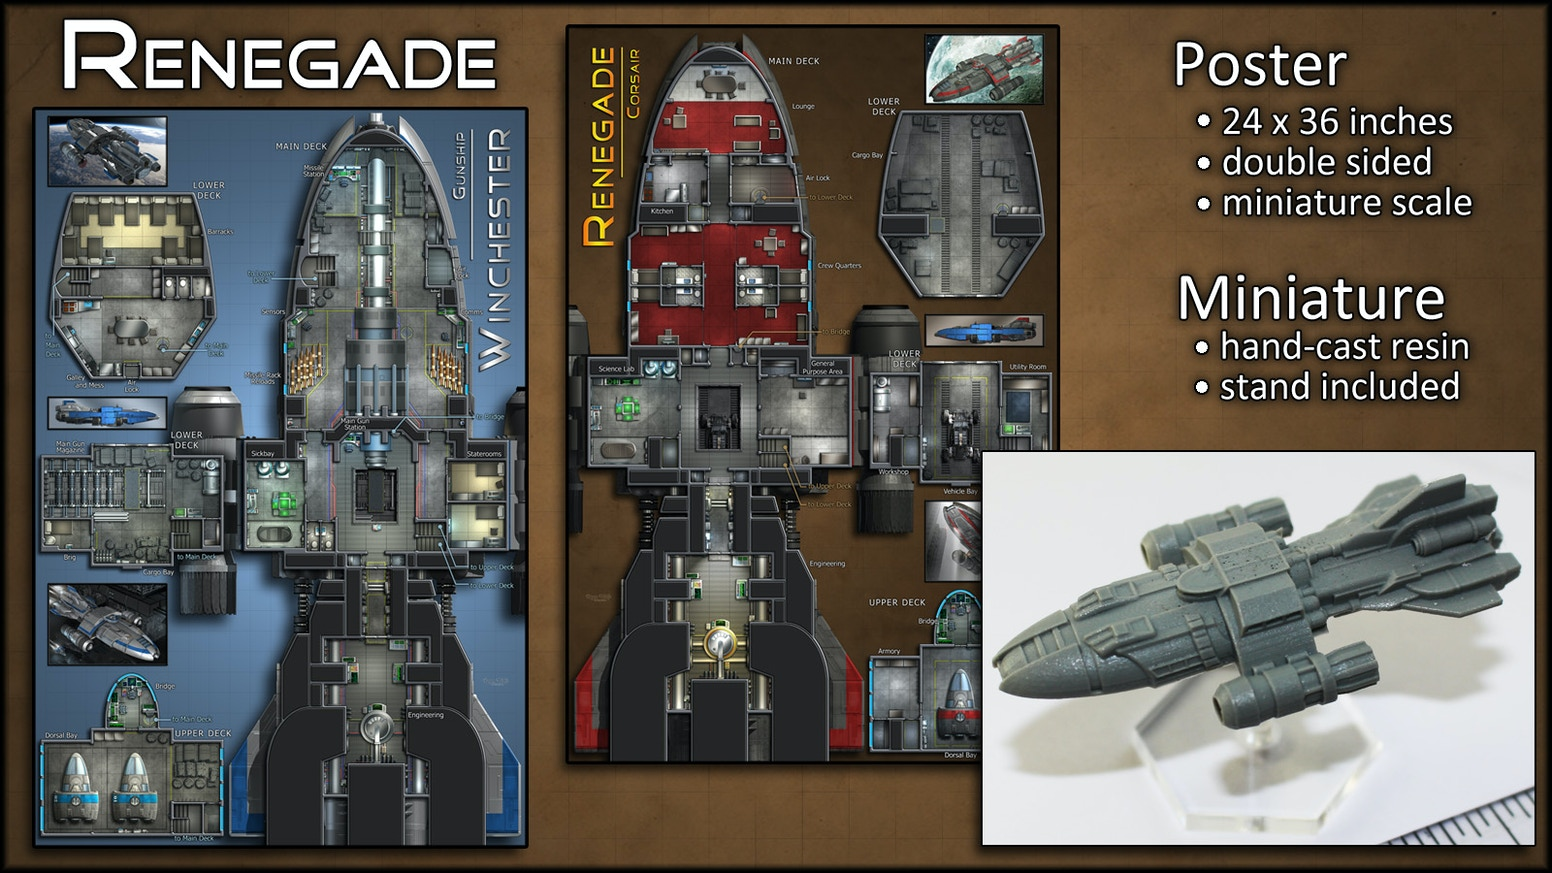 Renegade Starship Map Poster Amp Miniature By Ryan Wolfe